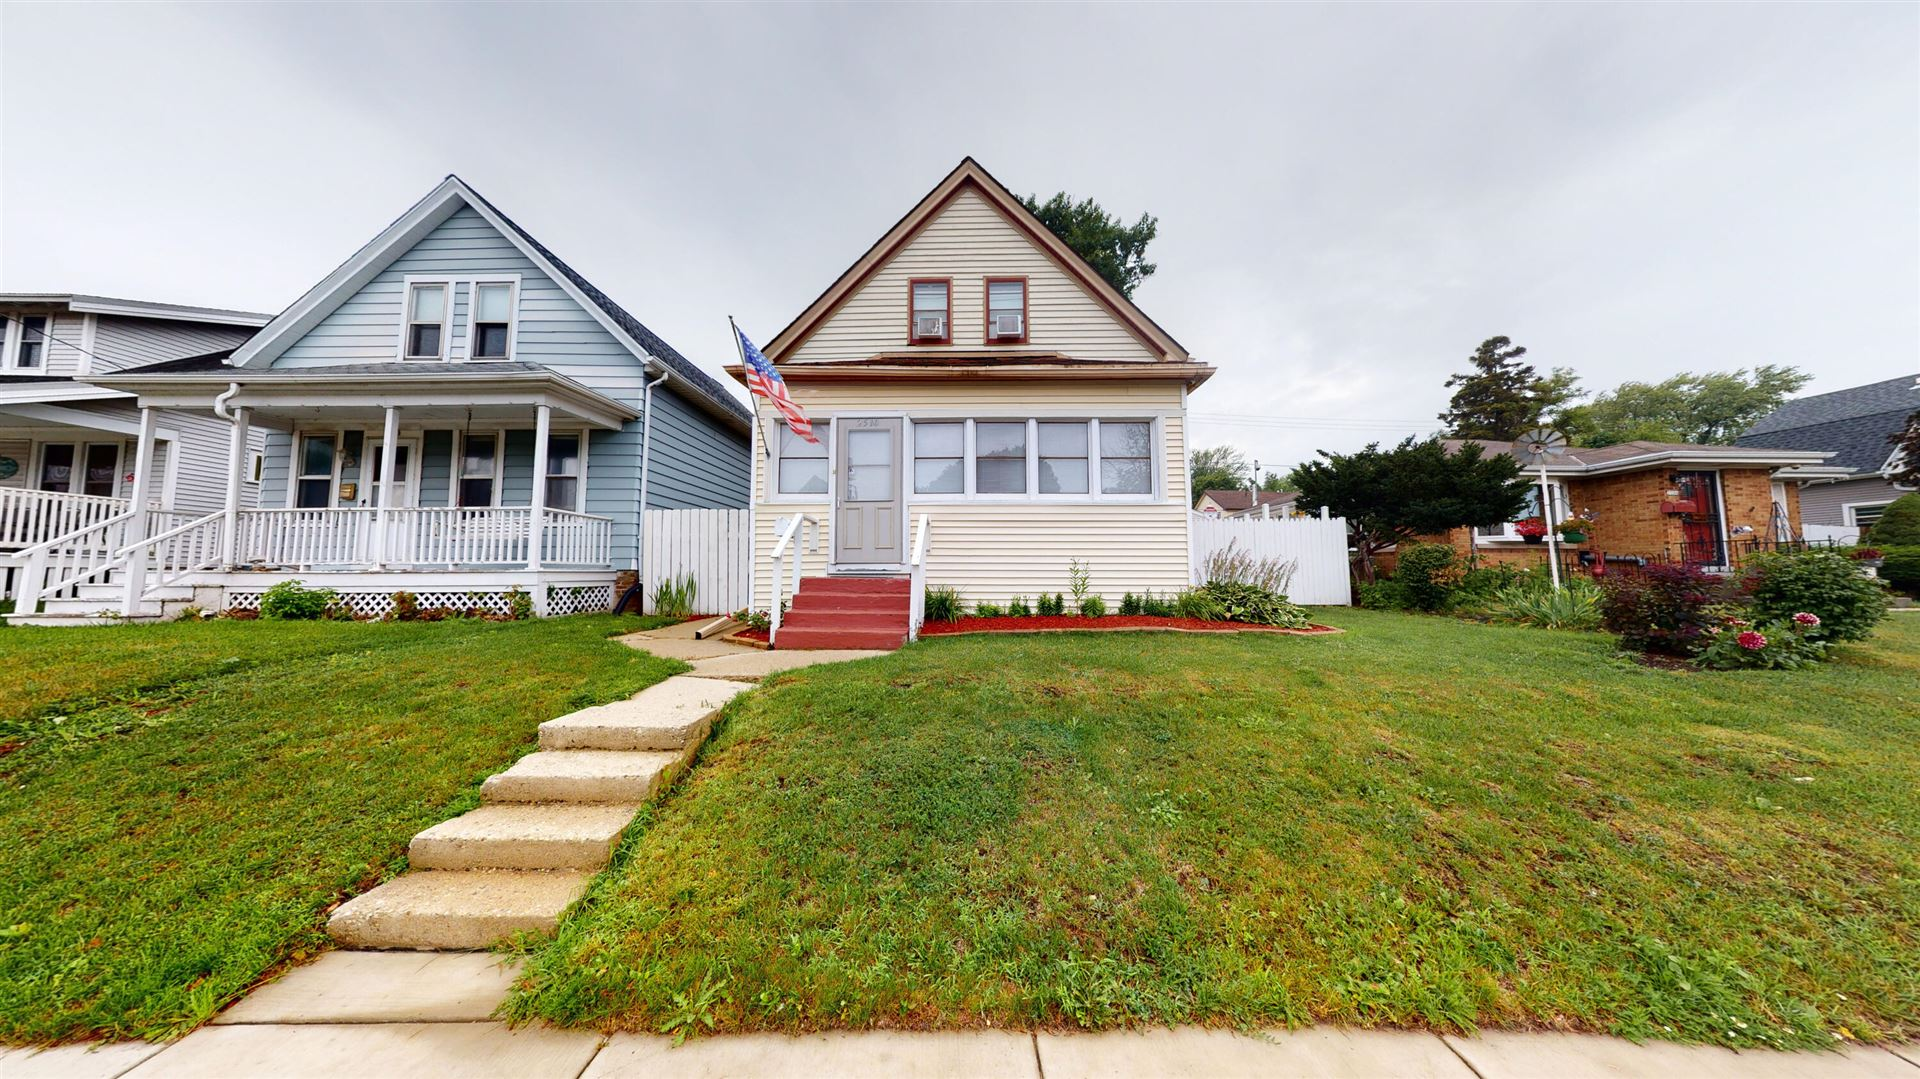 2510 S Chicago Ave, South Milwaukee, WI 53172 - MLS#: 1757991